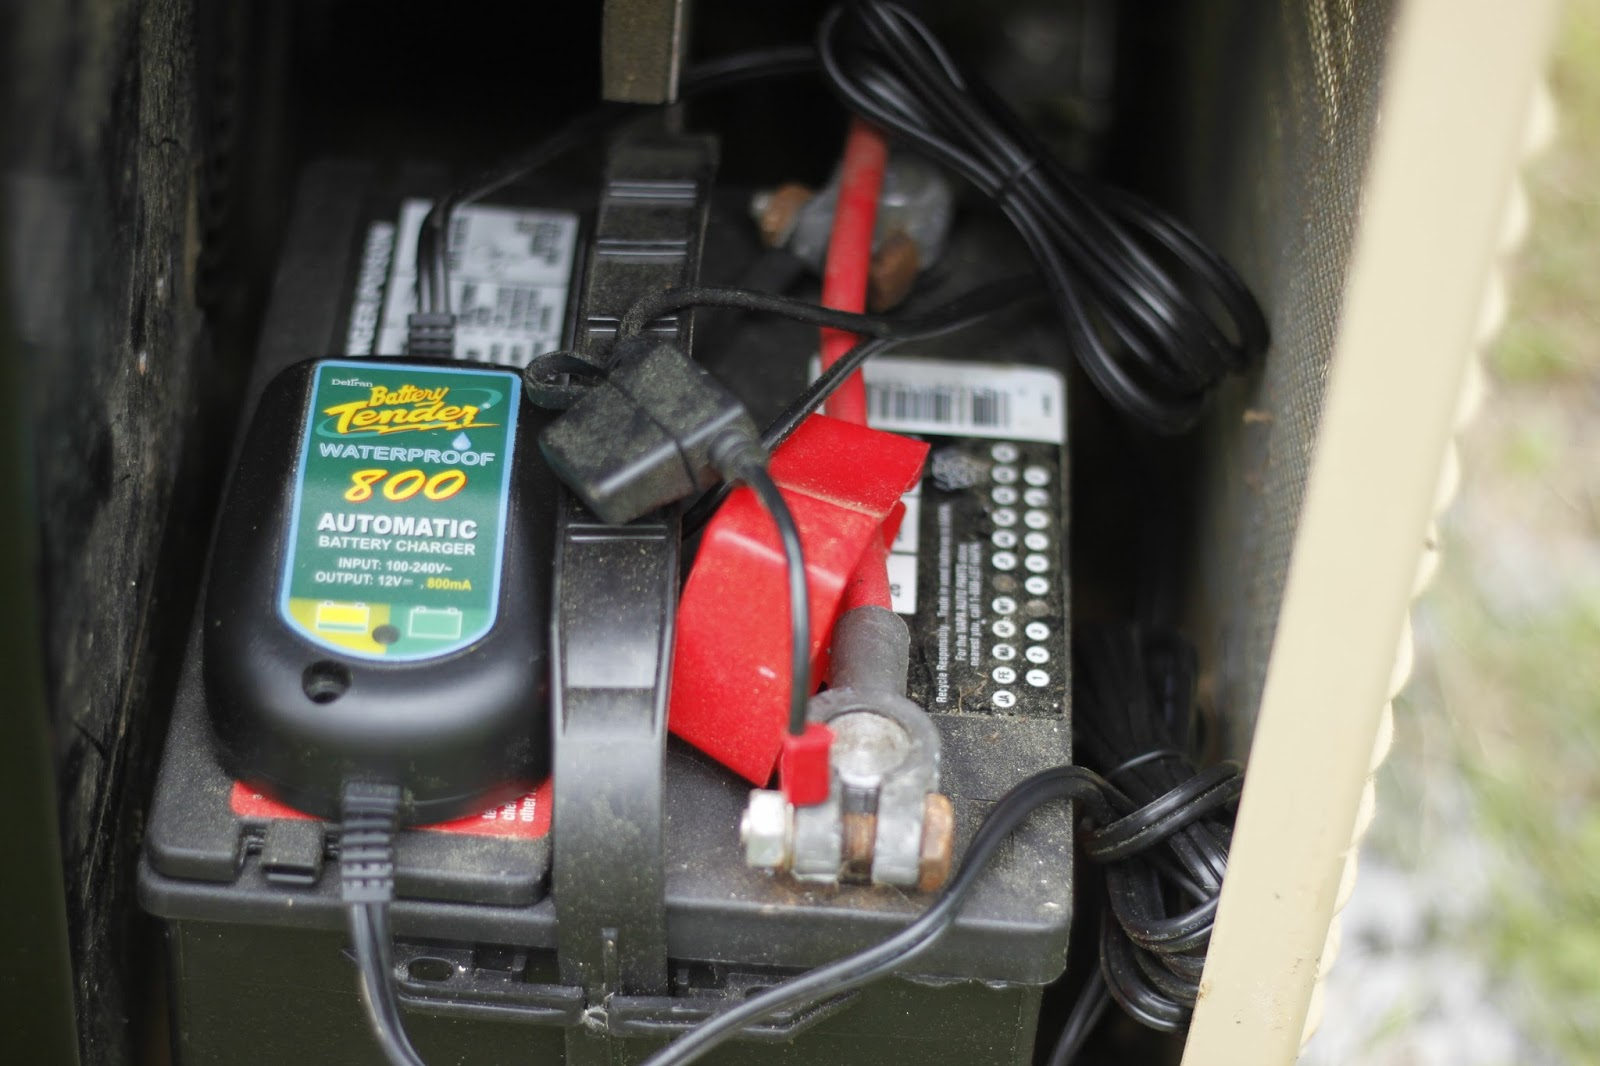 10kw Standby Generator Wiring Diagram Fet Tricks Substitue Battery Charger For Generac Generator